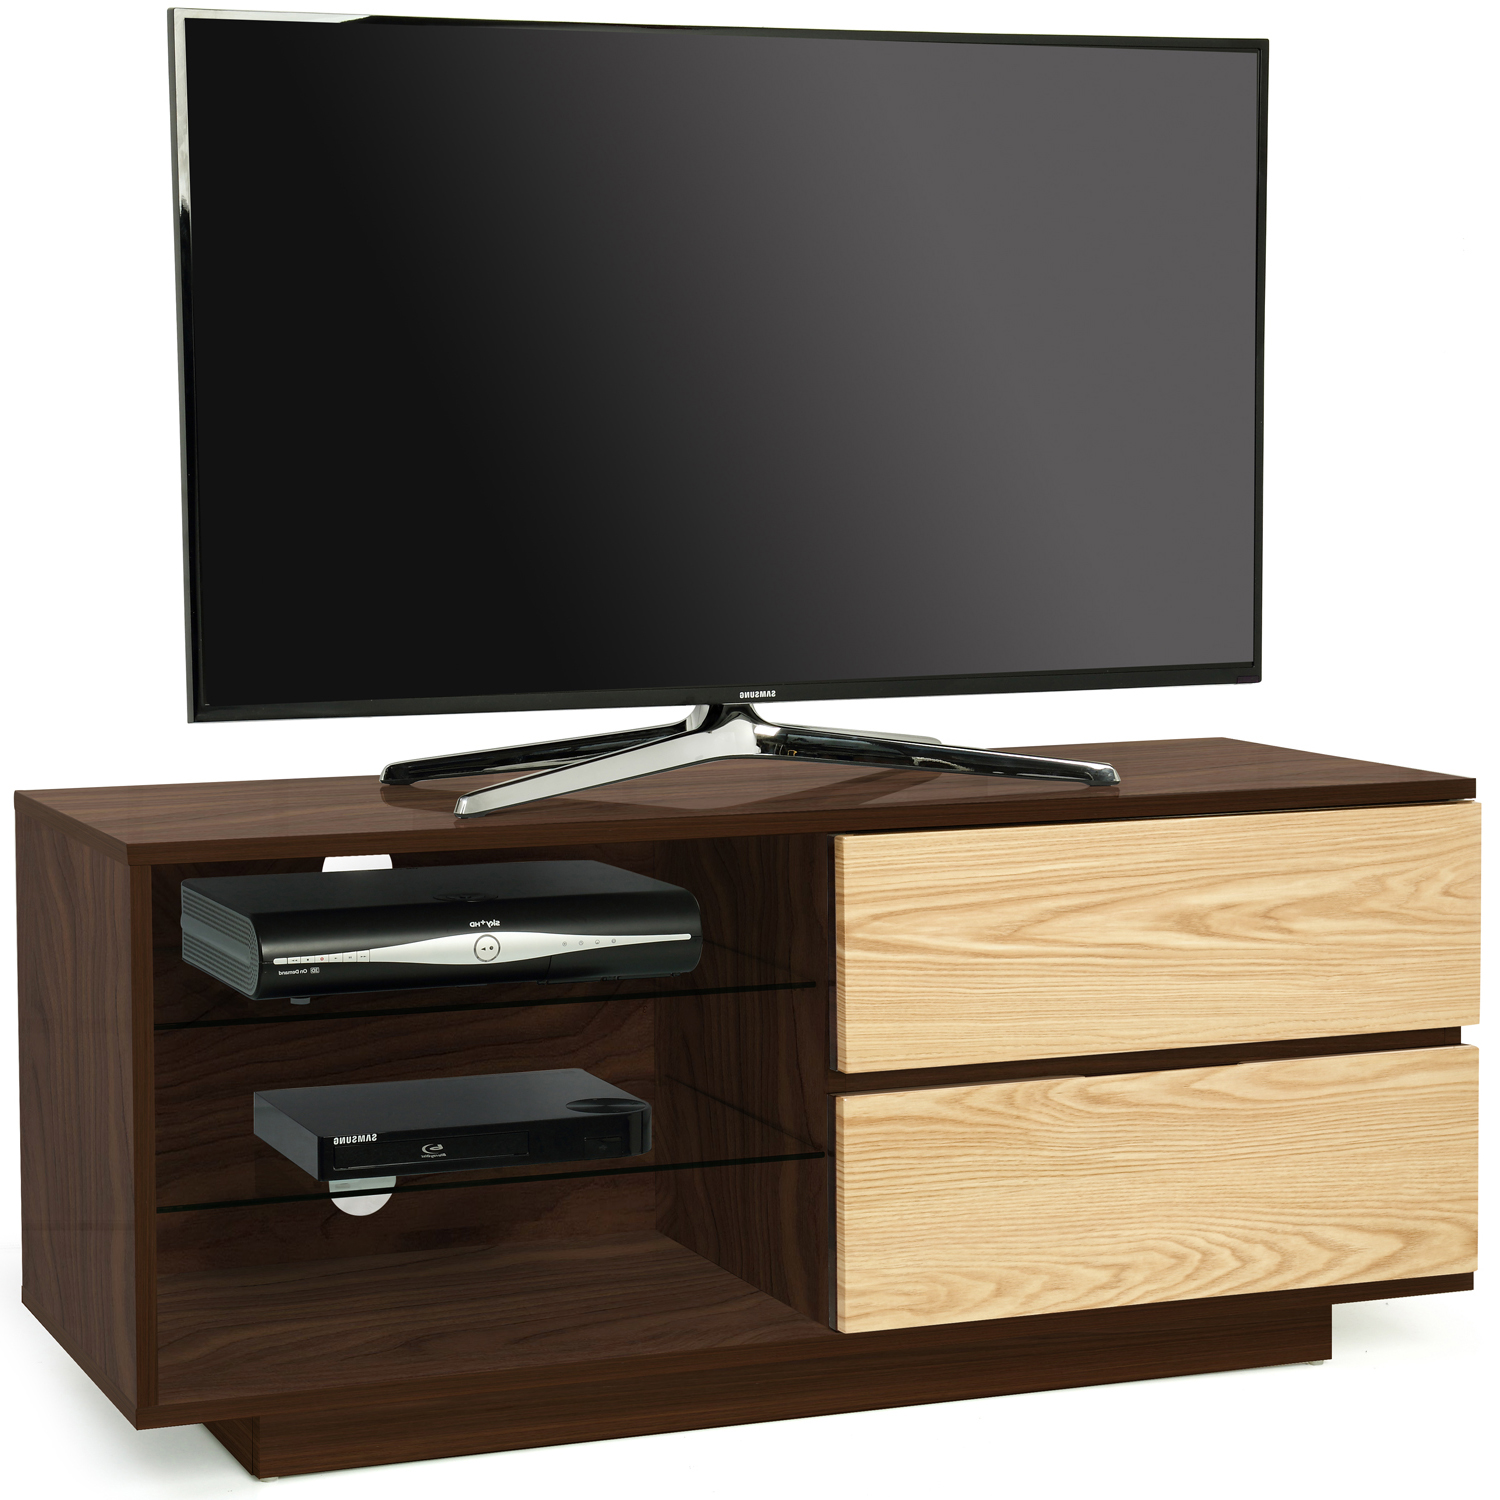 "Centurion Supports Gallus Premium Walnut with 2-Oak Drawers & 3-Shelf 26""-55"" LED/ OLED / LCD TV Cabinet"